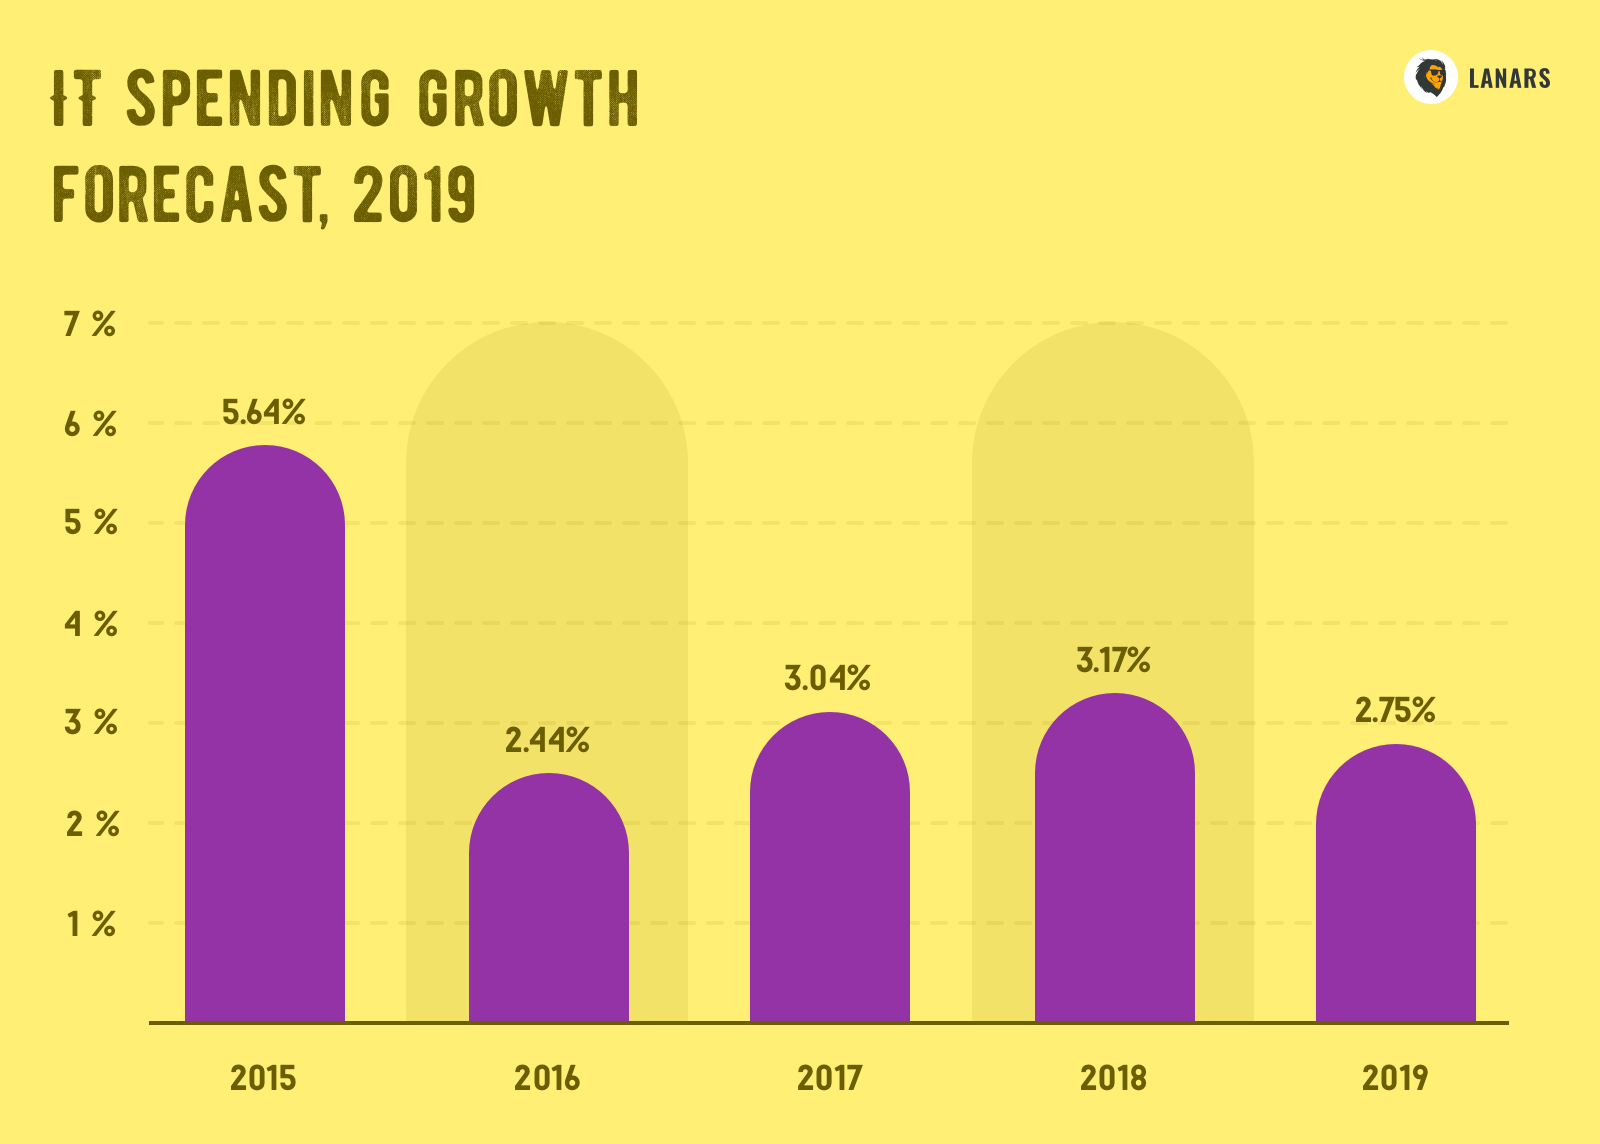 IT spending growth forecast, 2019